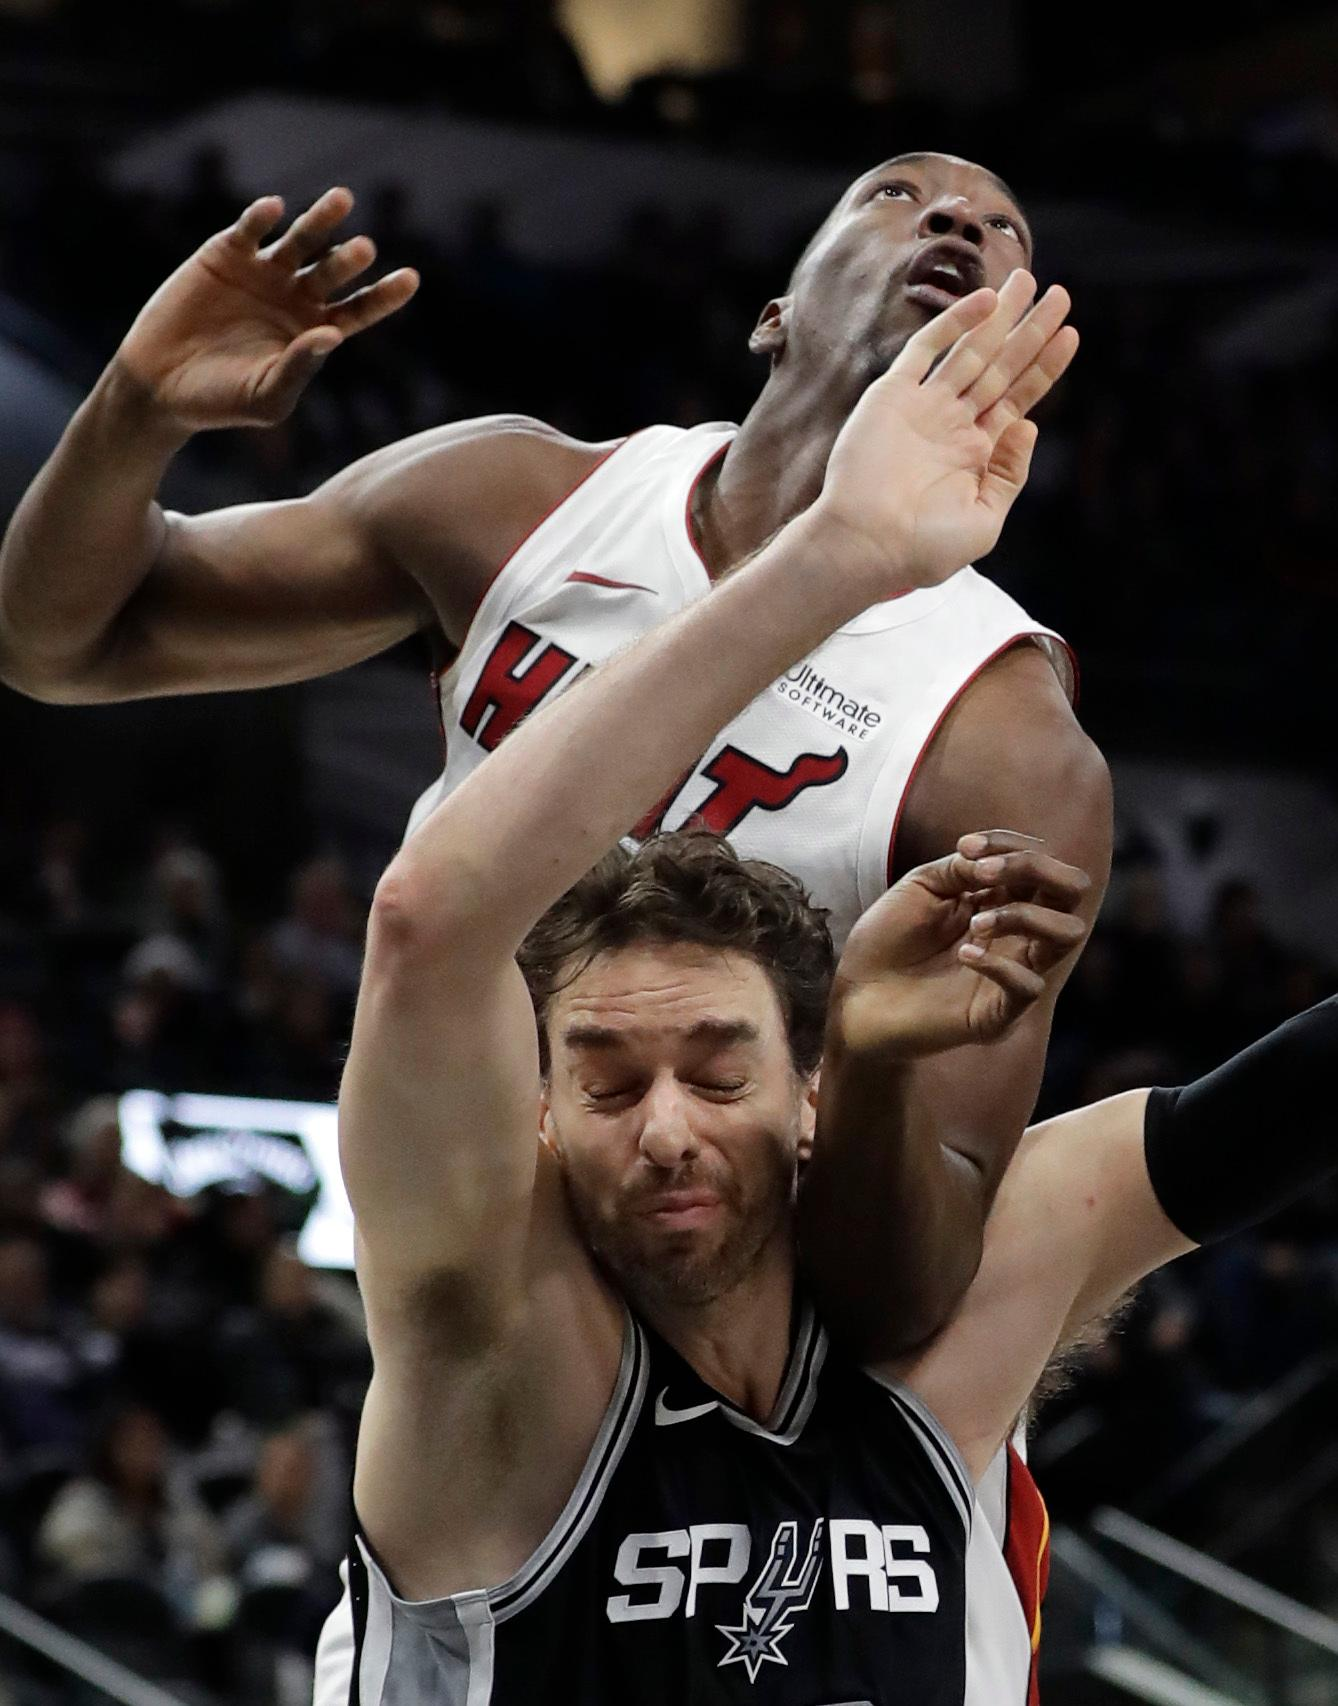 Miami Heat center Bam Adebayo, top, and San Antonio Spurs center Pau Gasol, bottom, jockey for position for a rebound during the first half of an NBA basketball game Wednesday, Dec. 6, 2017, in San Antonio. (AP Photo/Eric Gay)